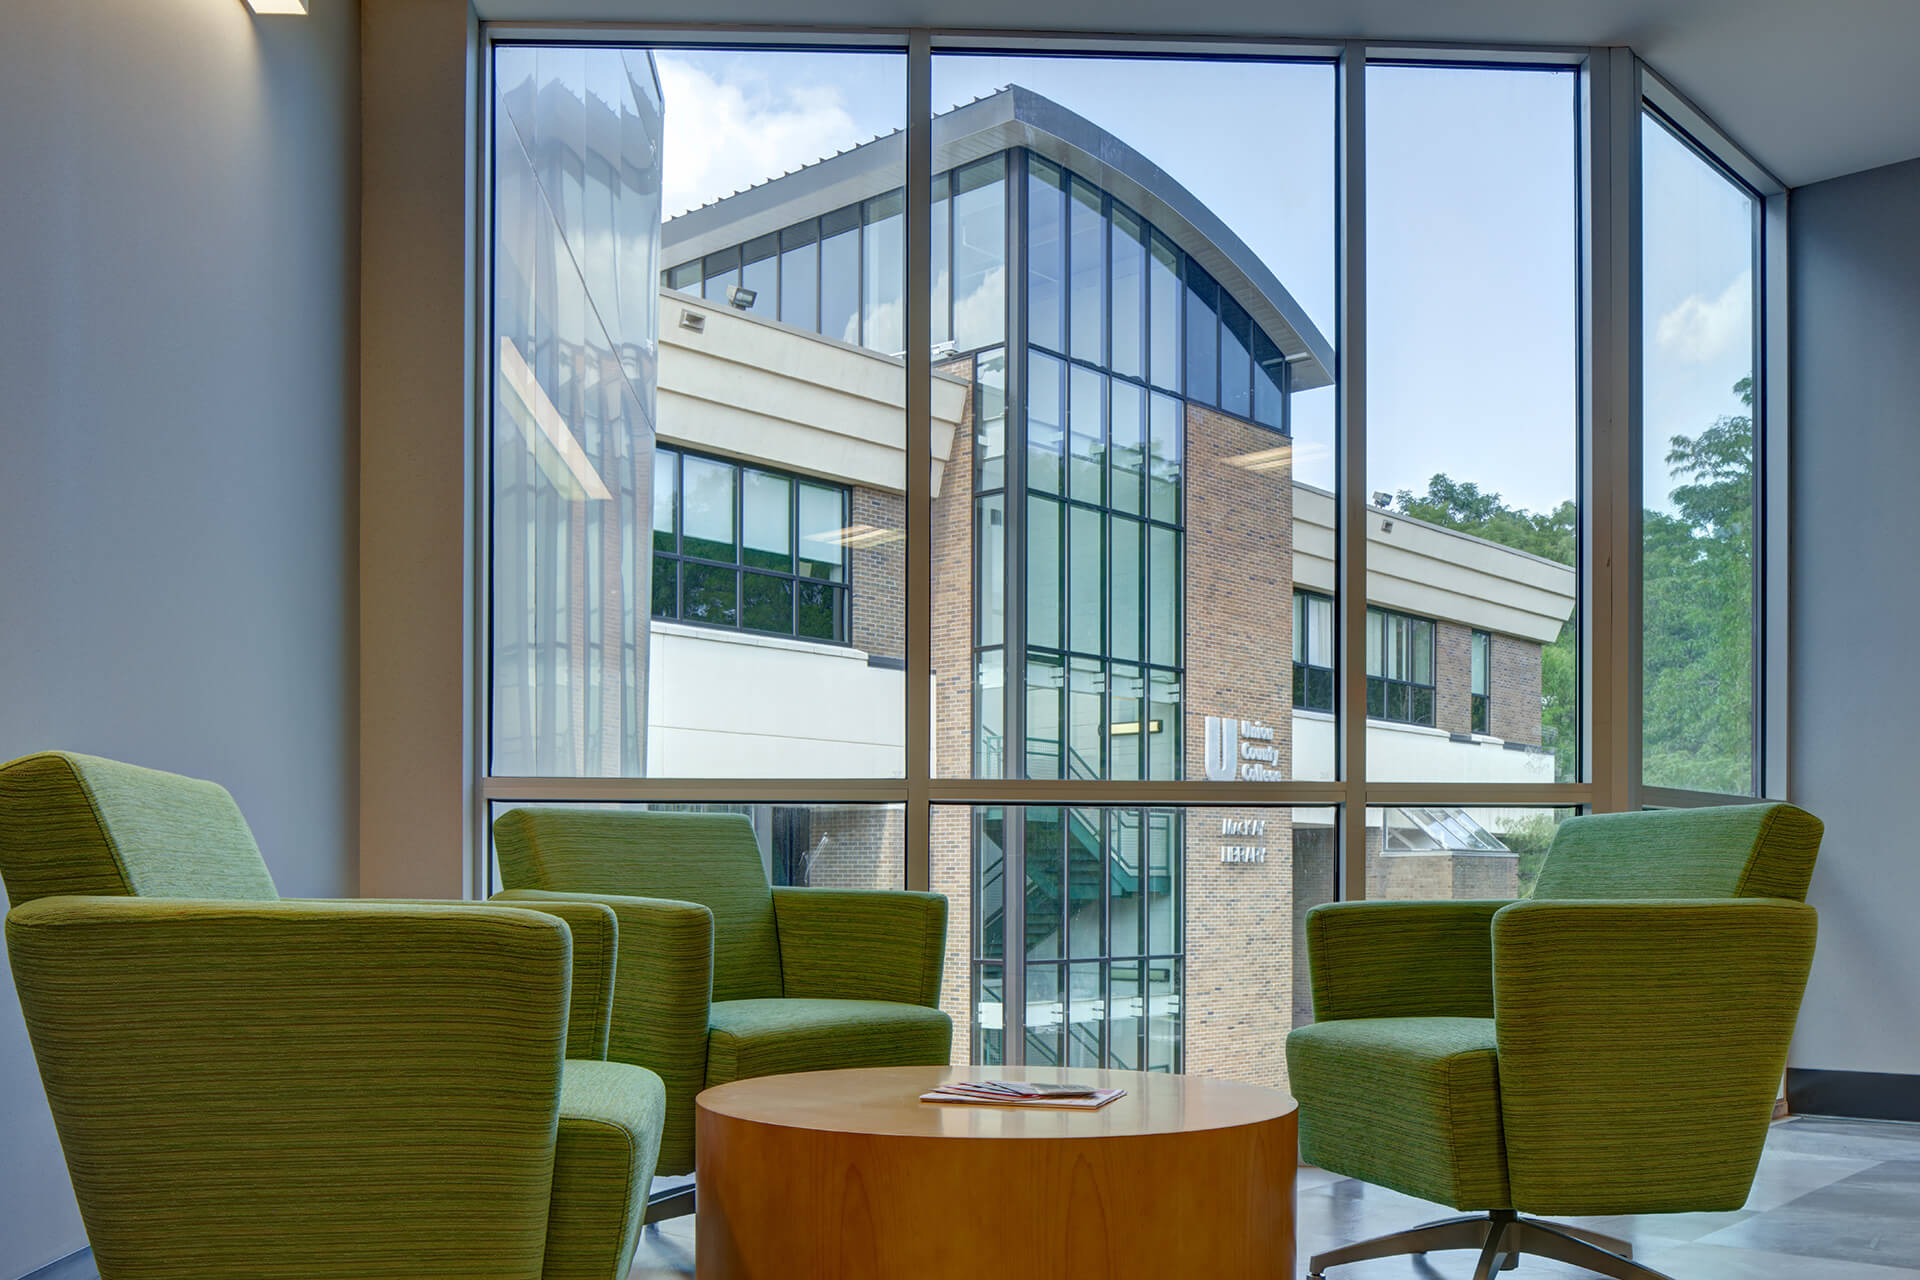 UCC Student Services Center Seating